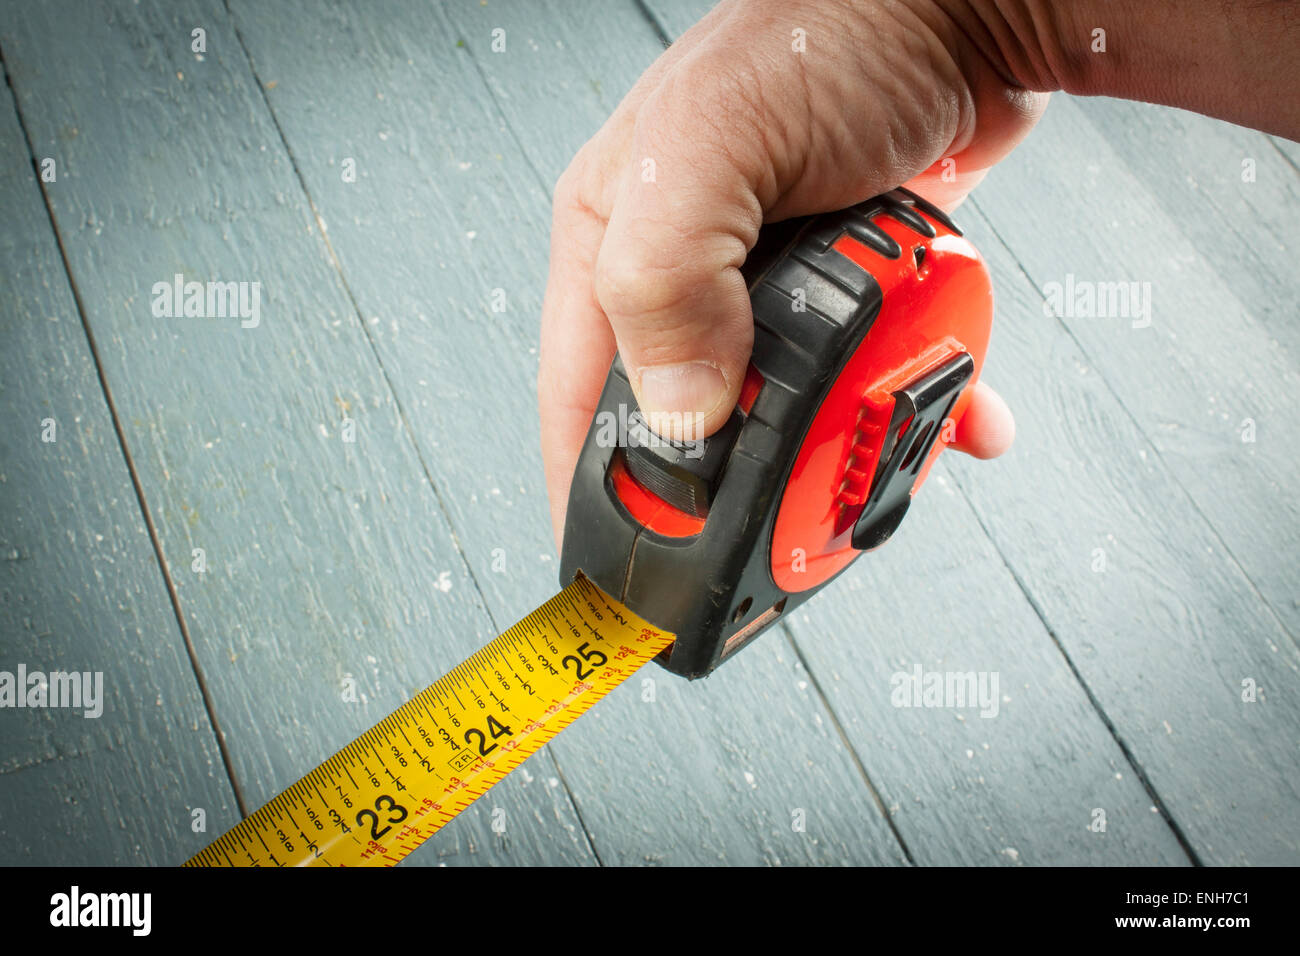 A tape measure extended to 25 inches. - Stock Image